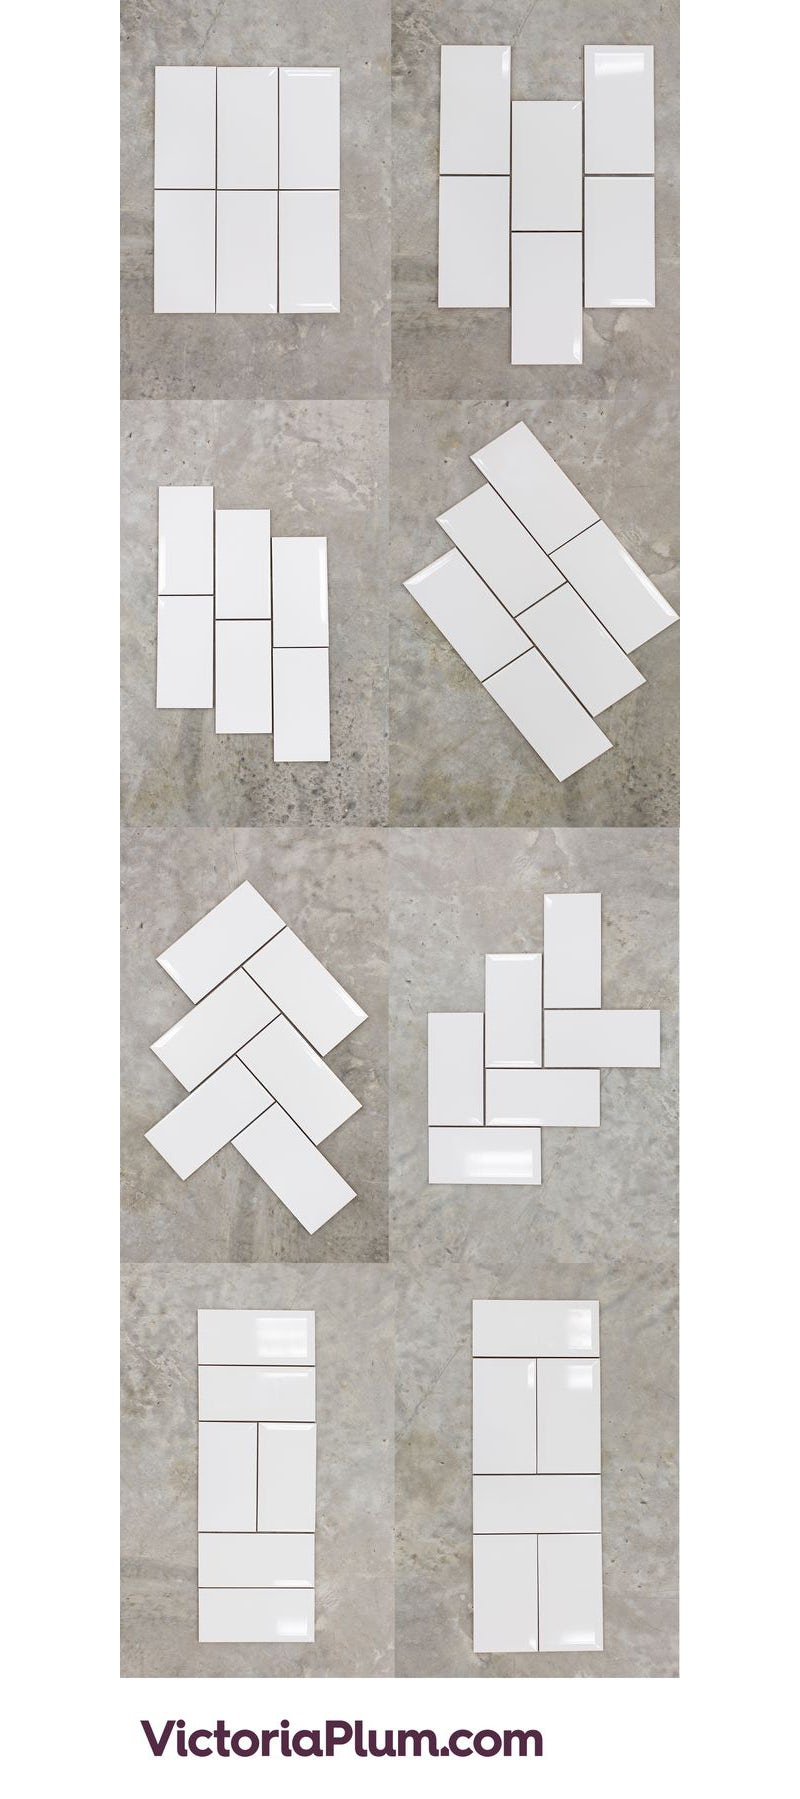 8 different ways to use metro tiles